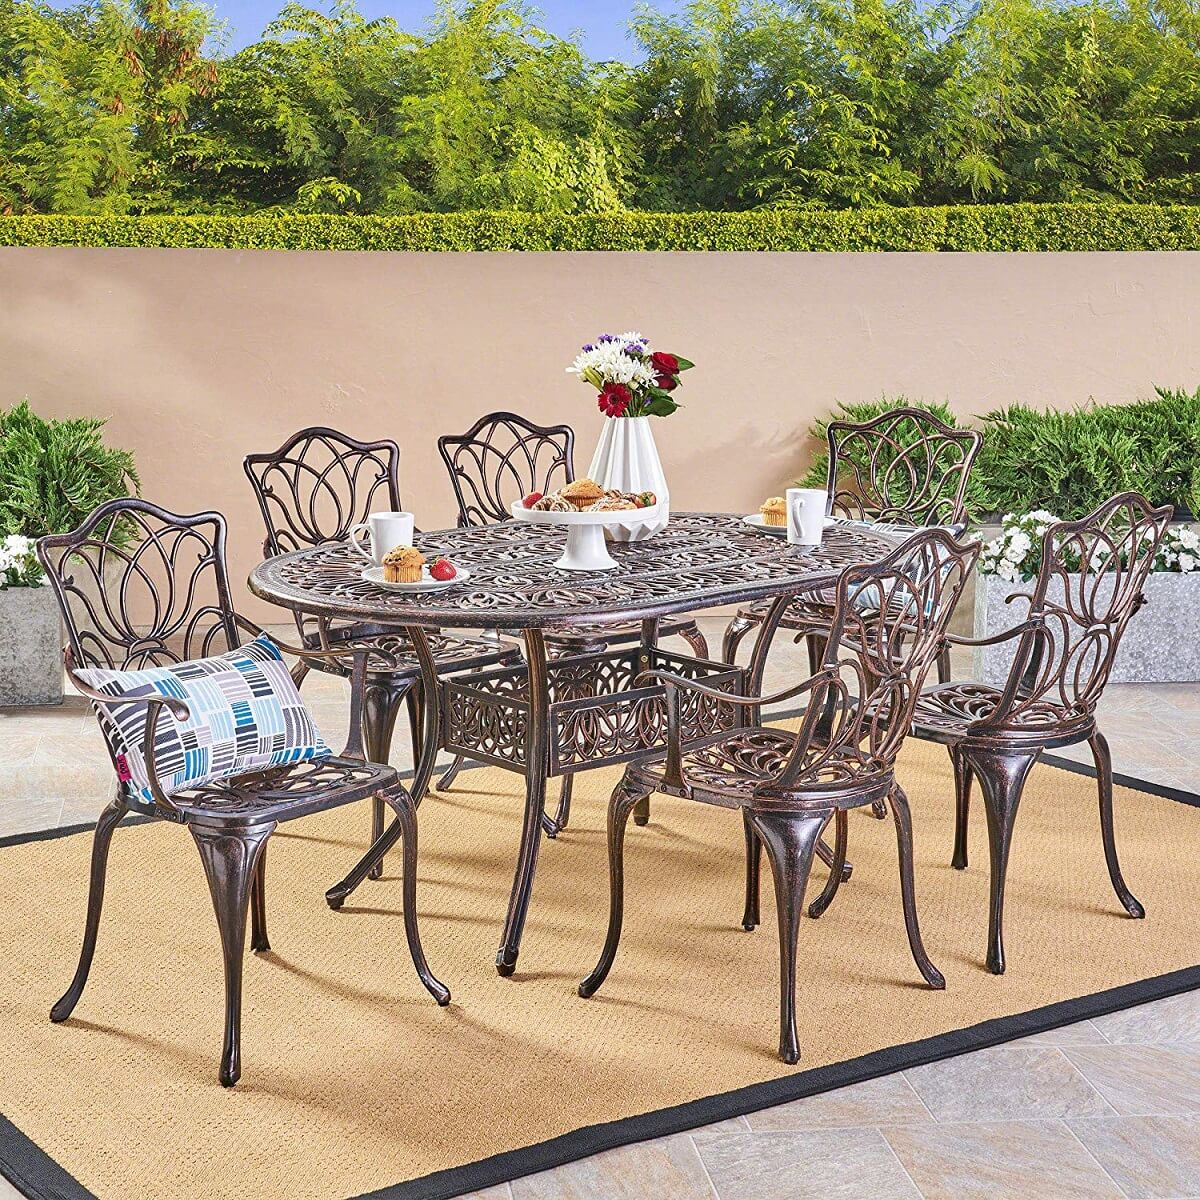 Garden Style Copper Dining Set